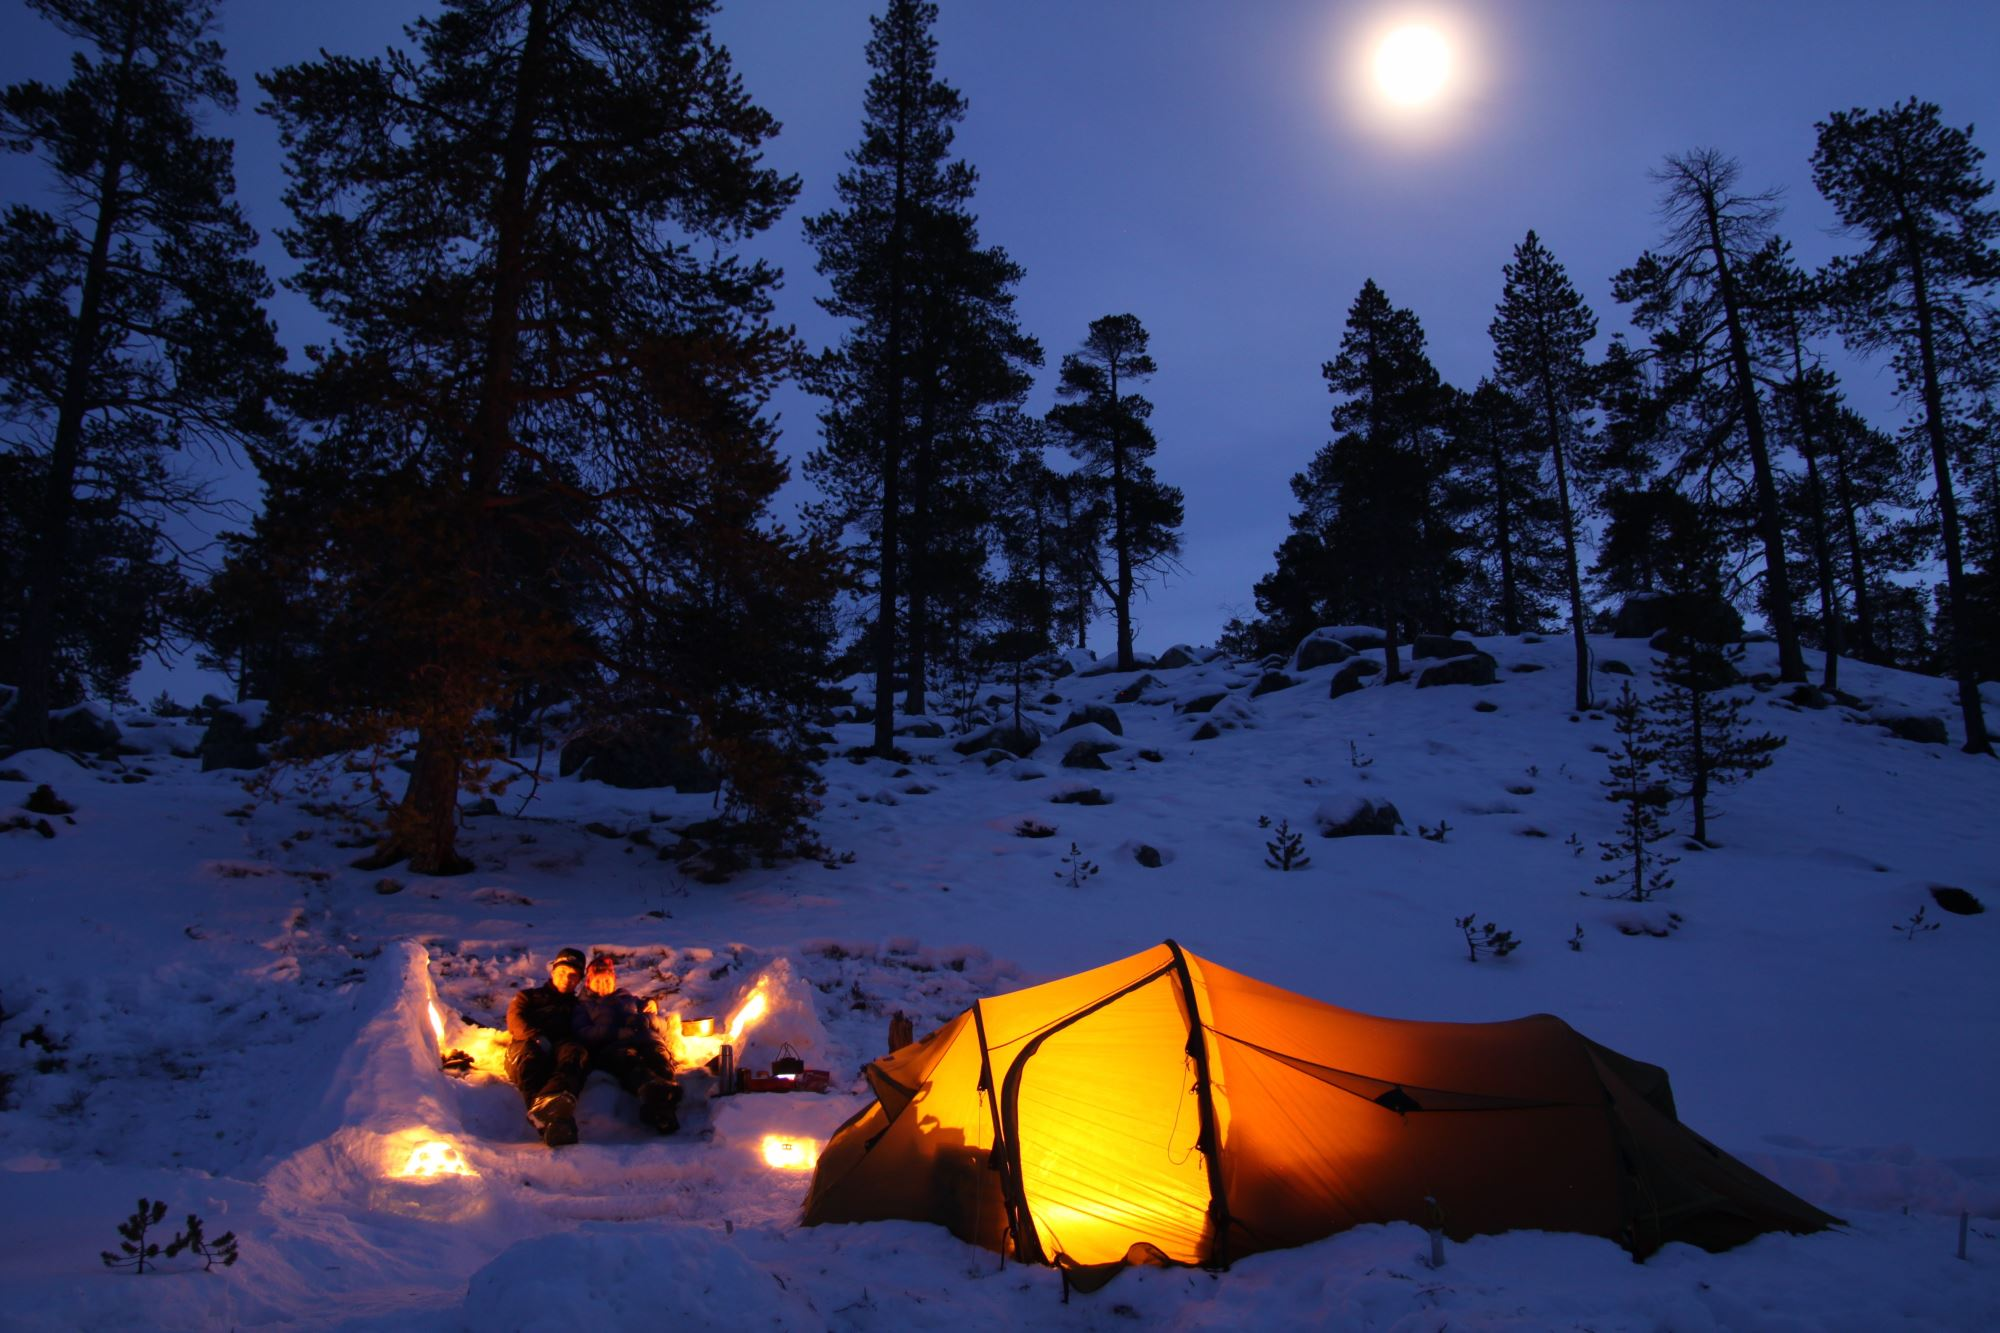 Tenting under the full moon :)